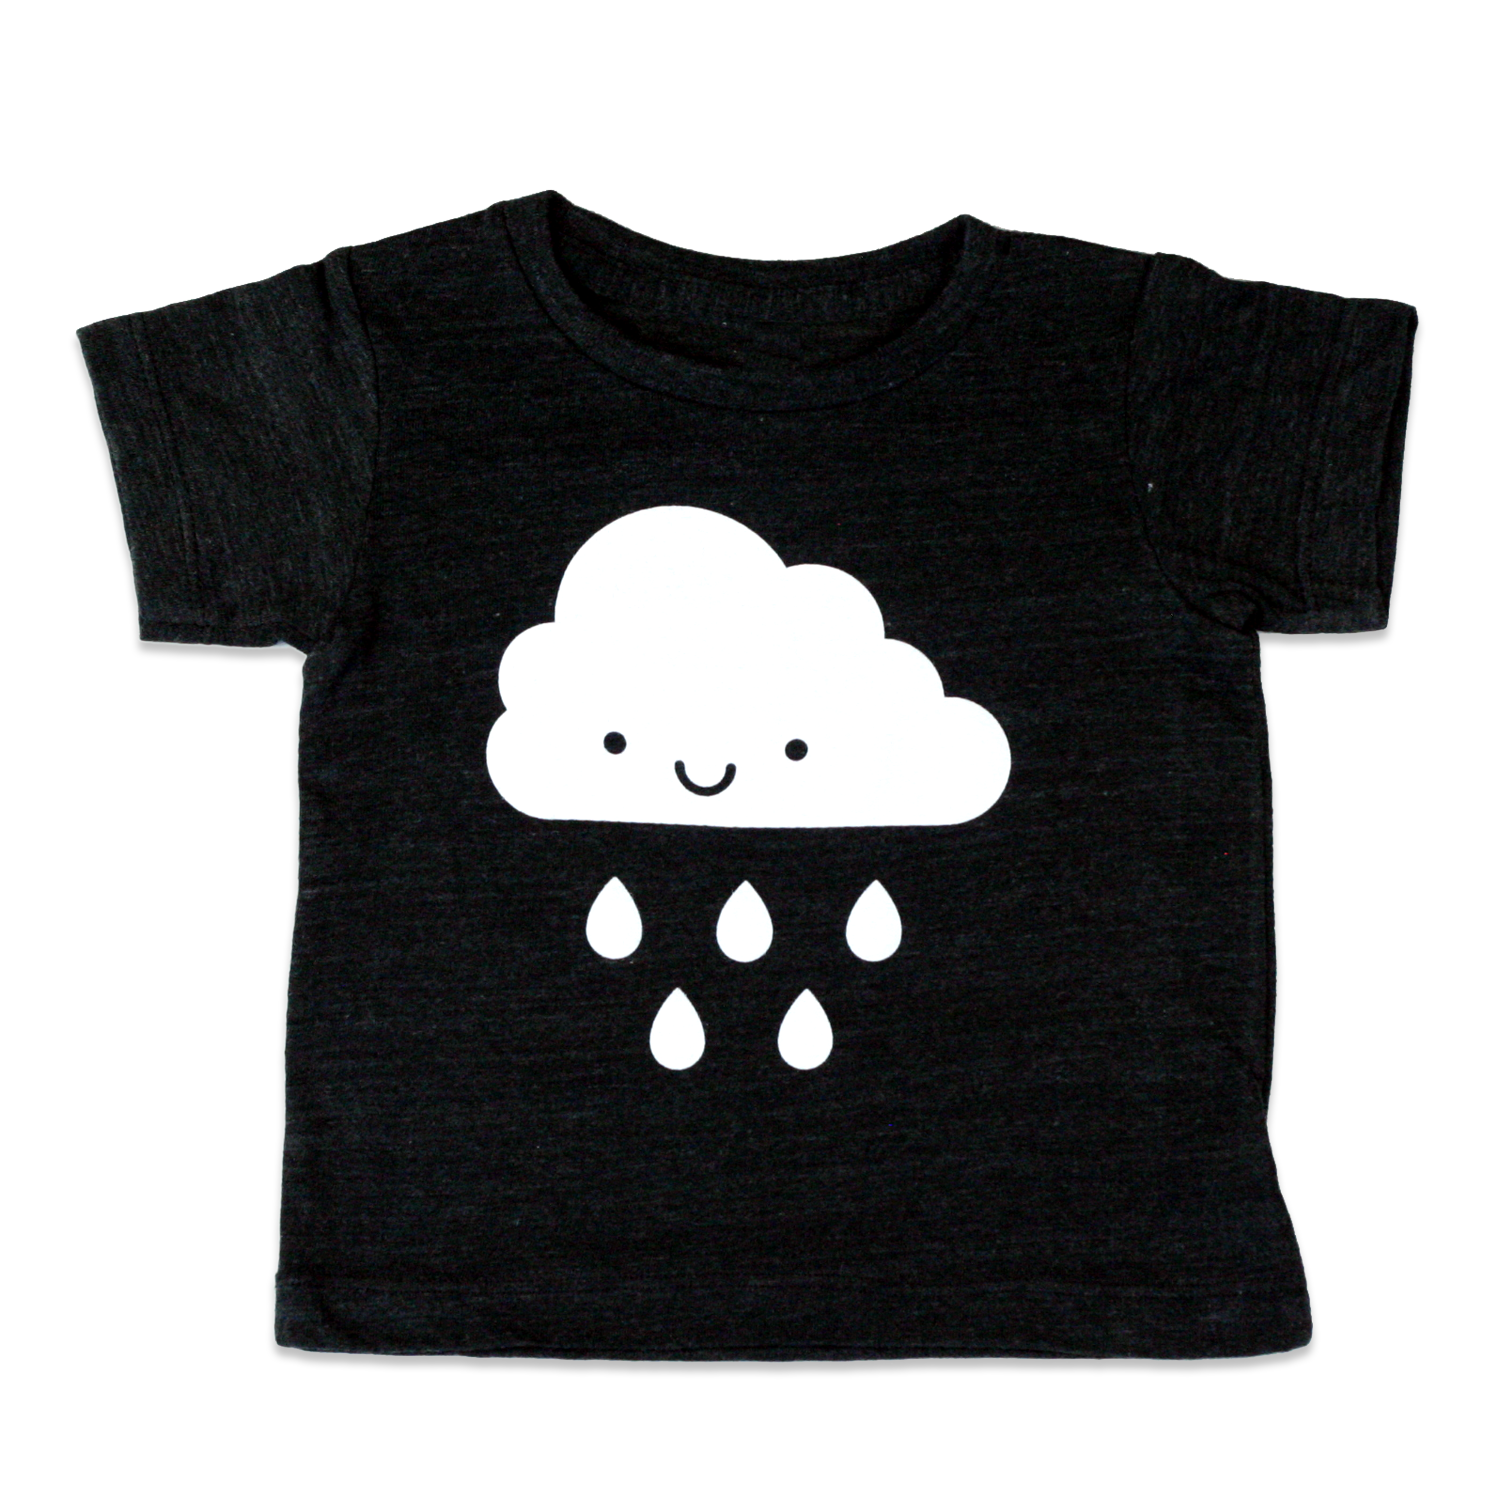 Cloud clothing store